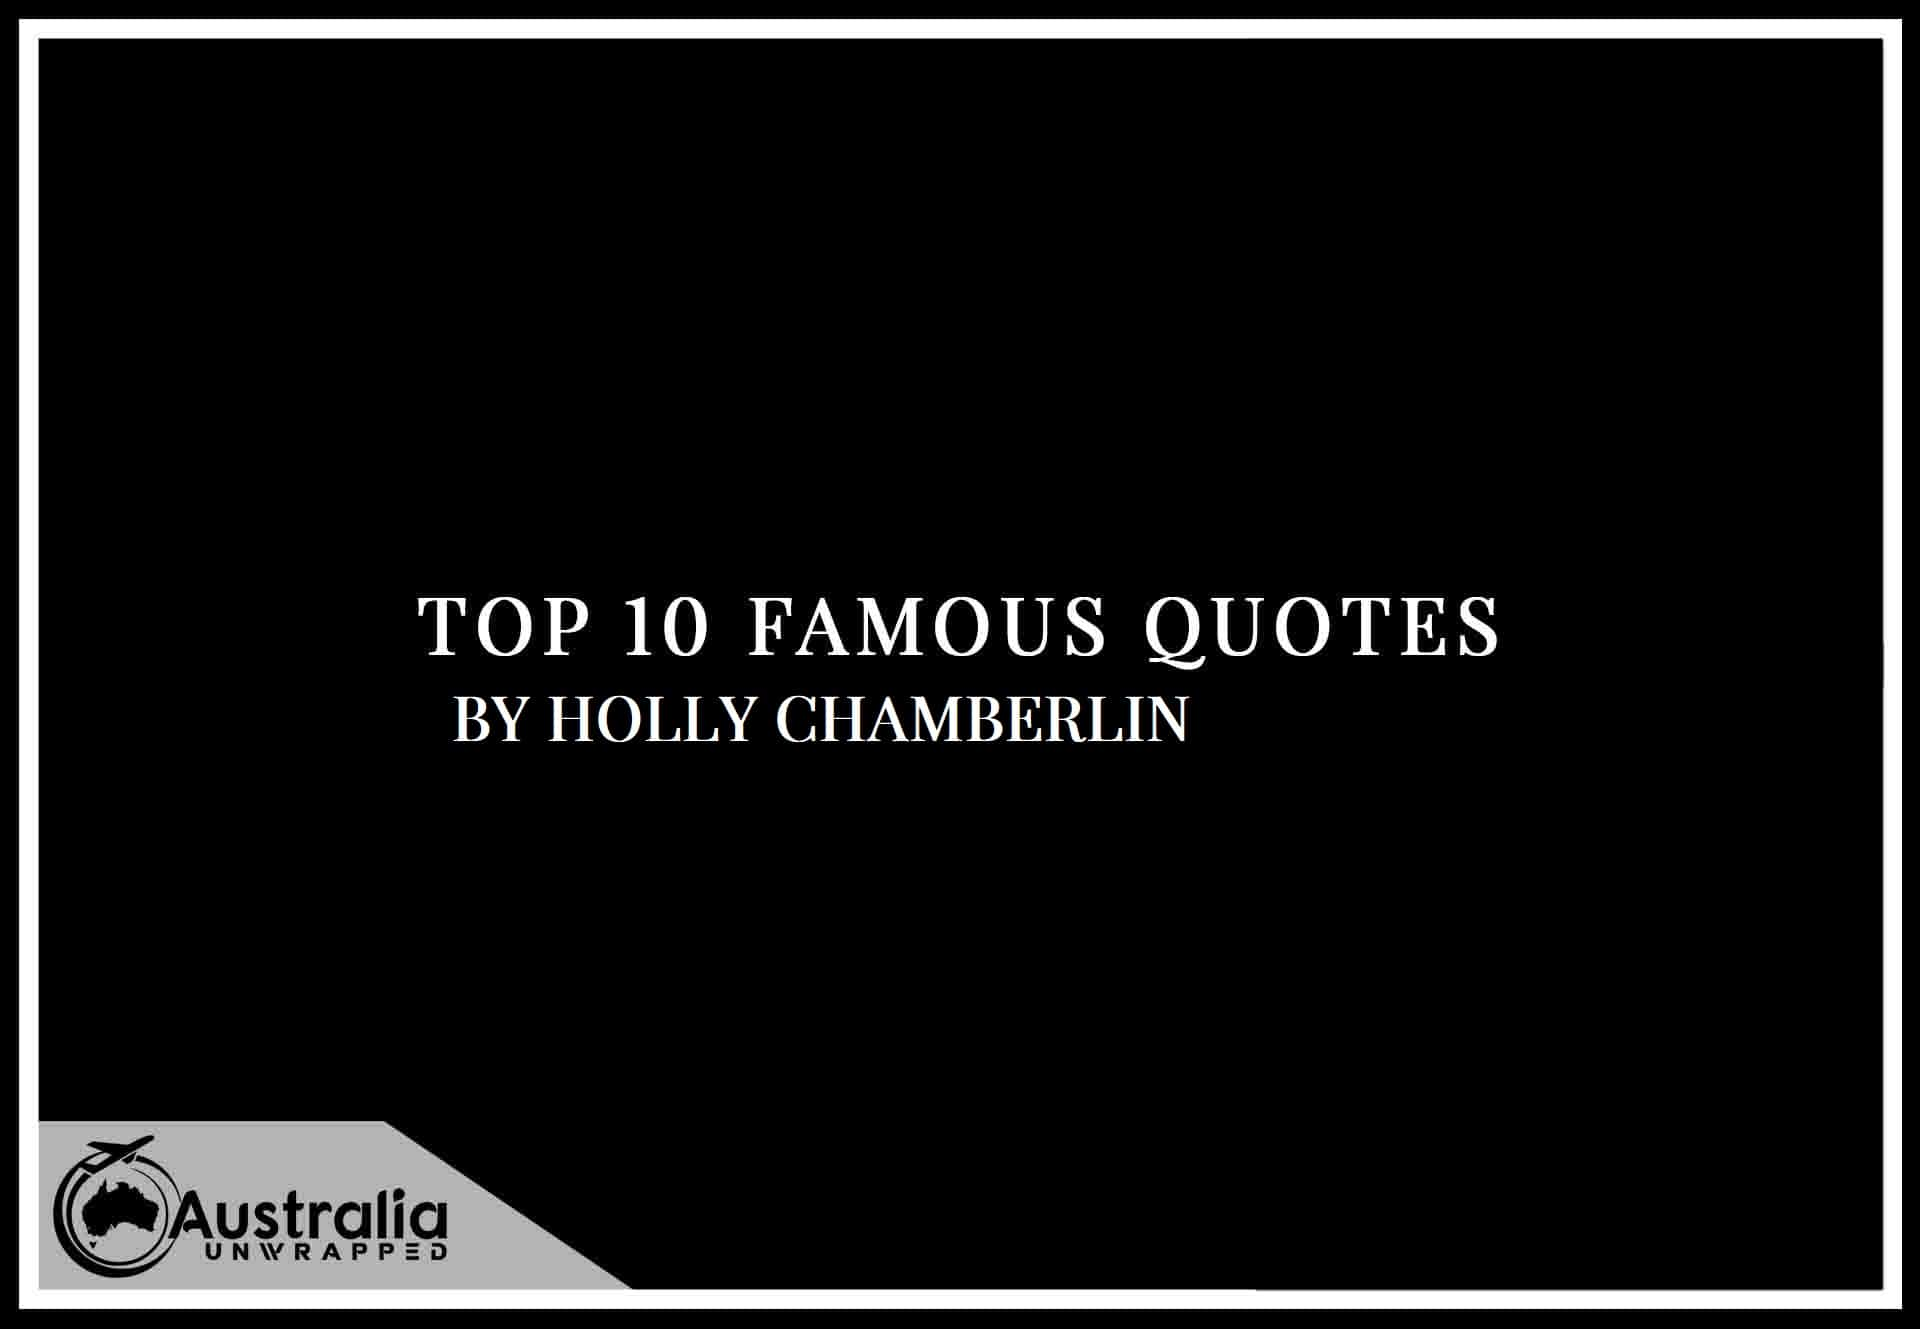 Top 10 Famous Quotes by Author Holly Chamberlin